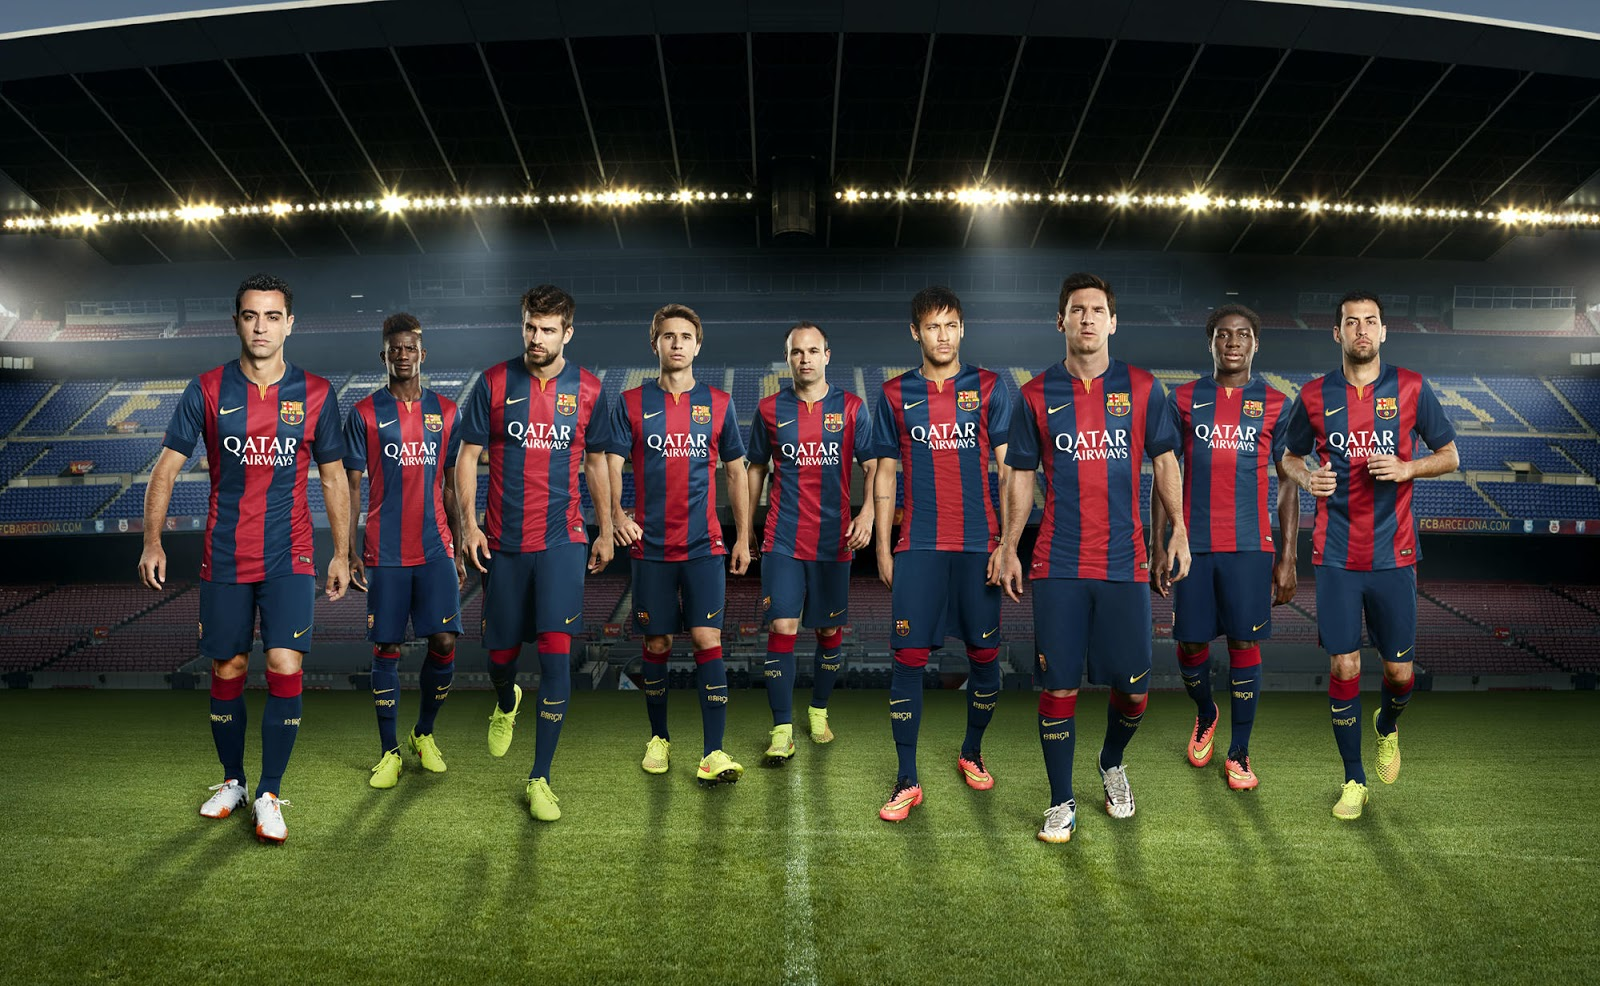 97efd44e75b The striking detail of the new Barca 2014-2015 kit is the blue round  collar